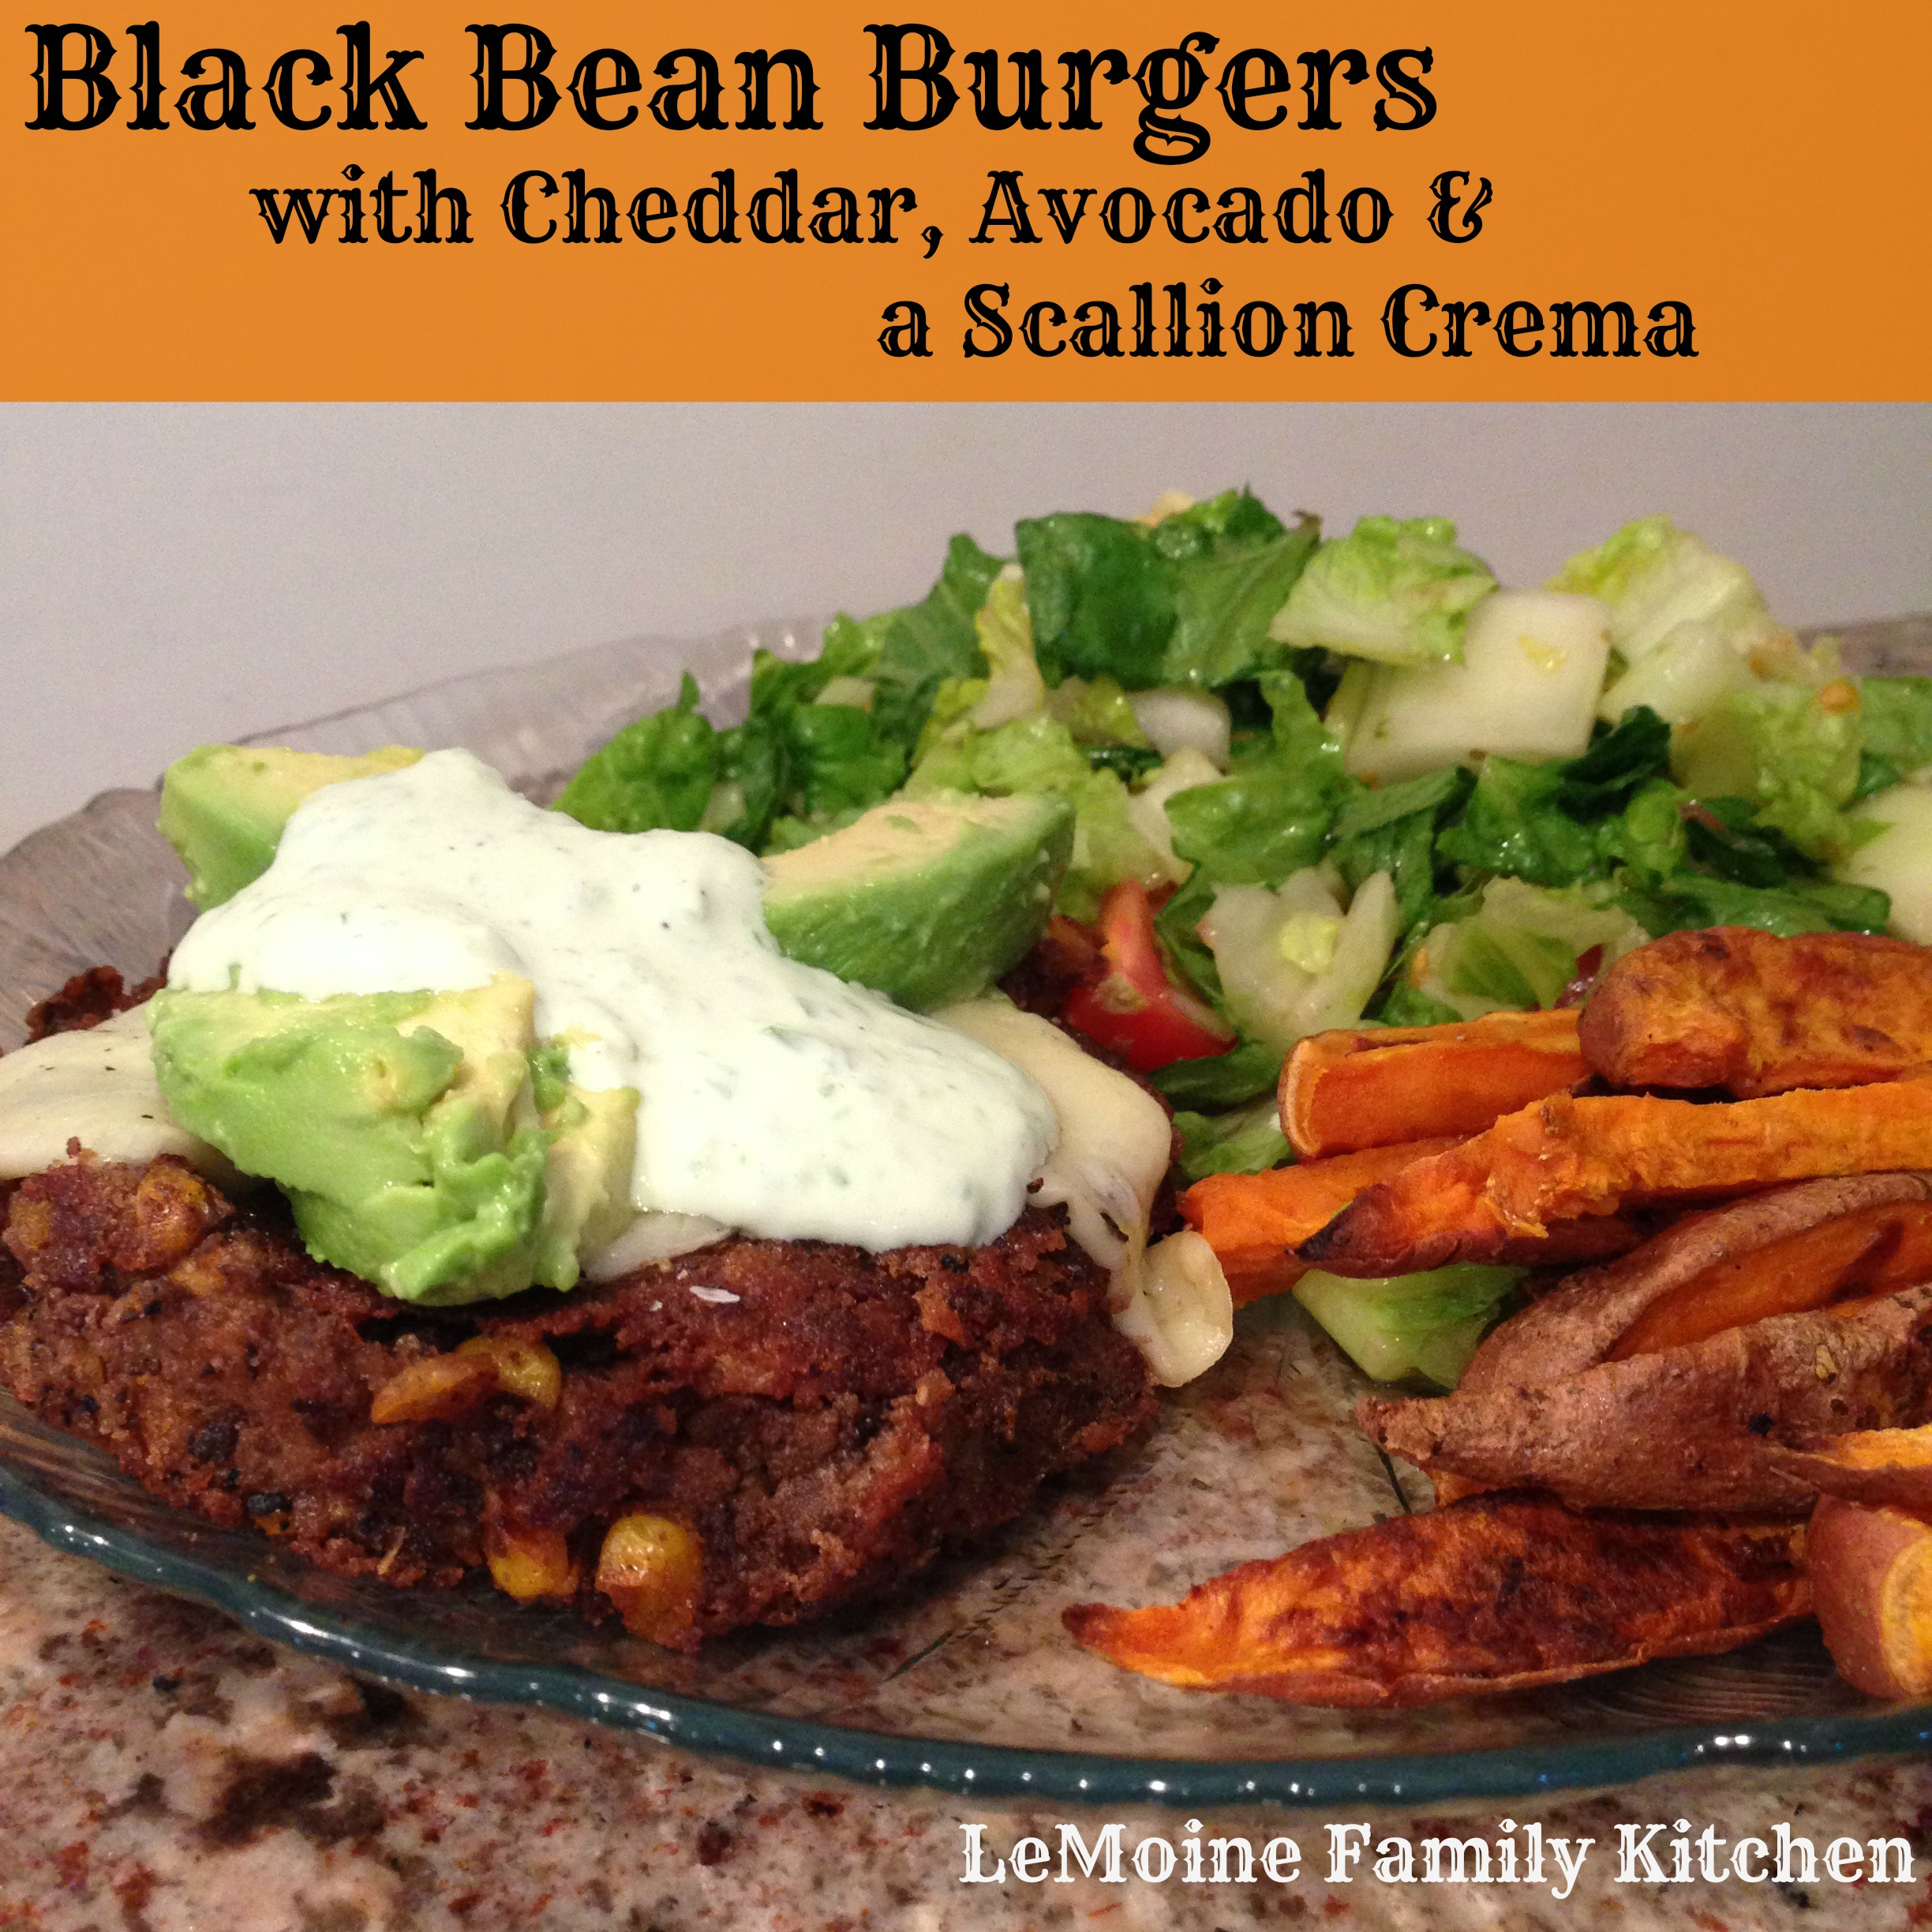 Black Bean Burgers with Cheddar, Avocado & Scallion Creama